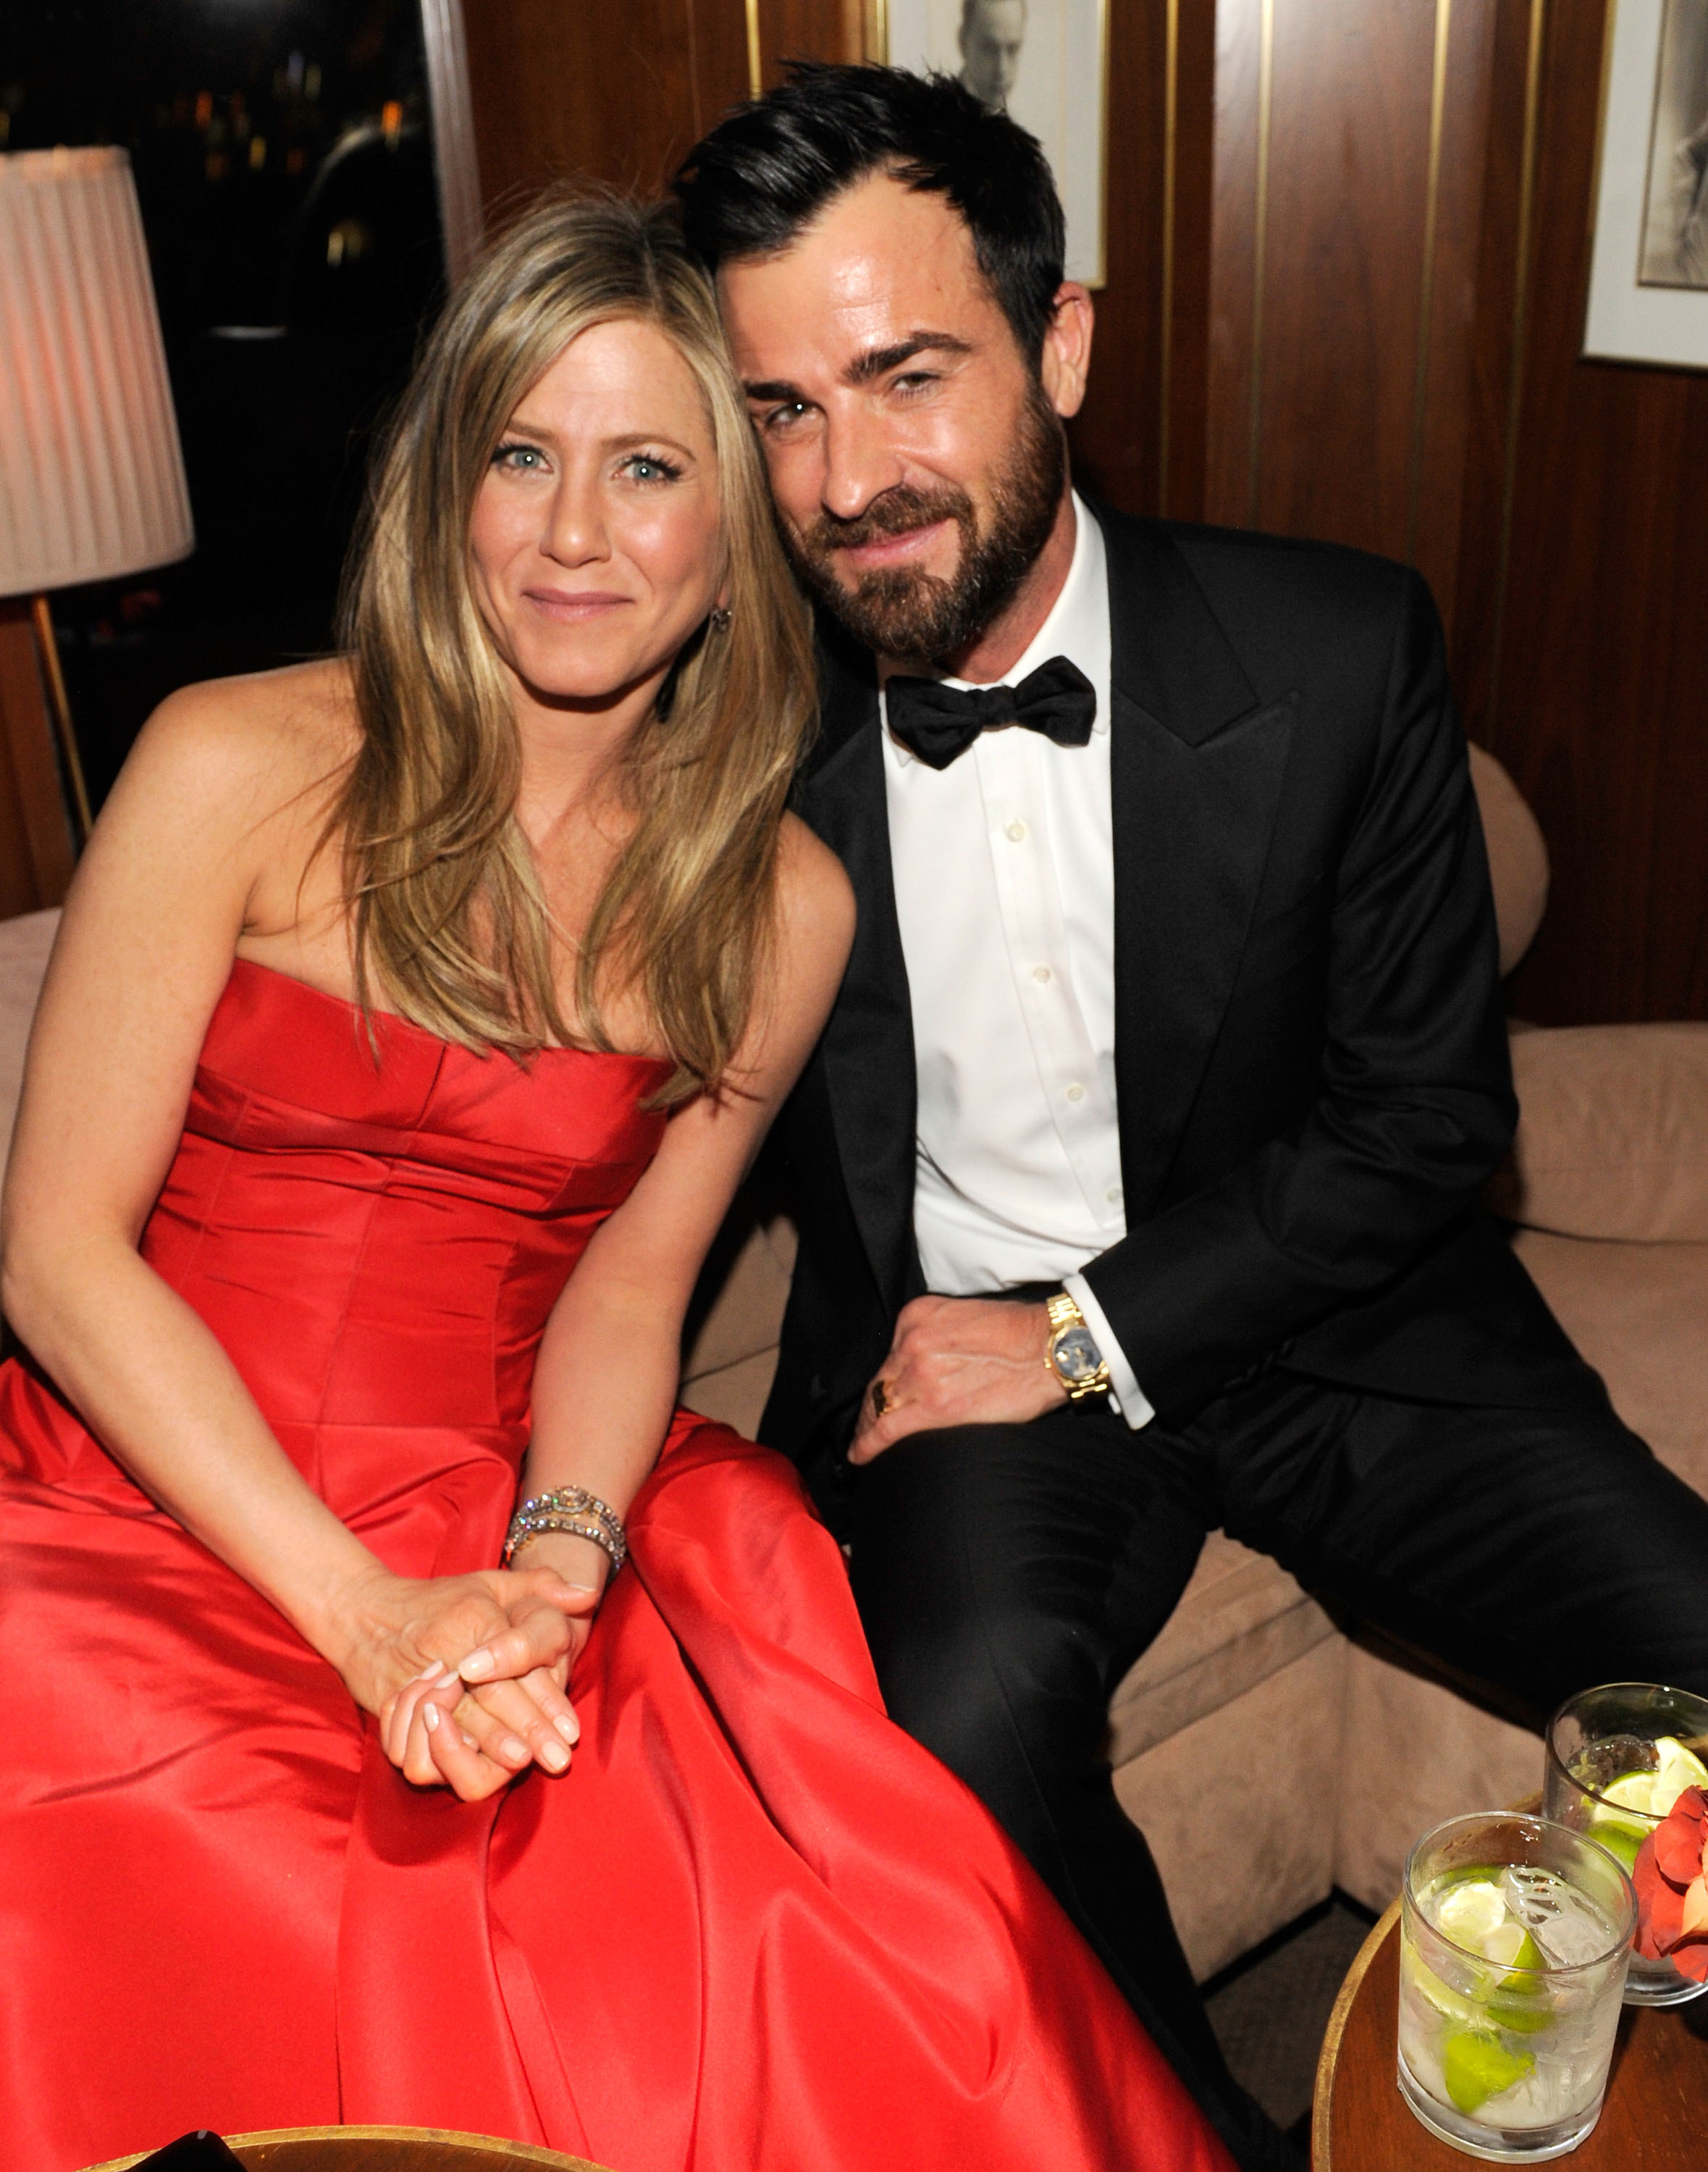 Jennifer Aniston wedding plans